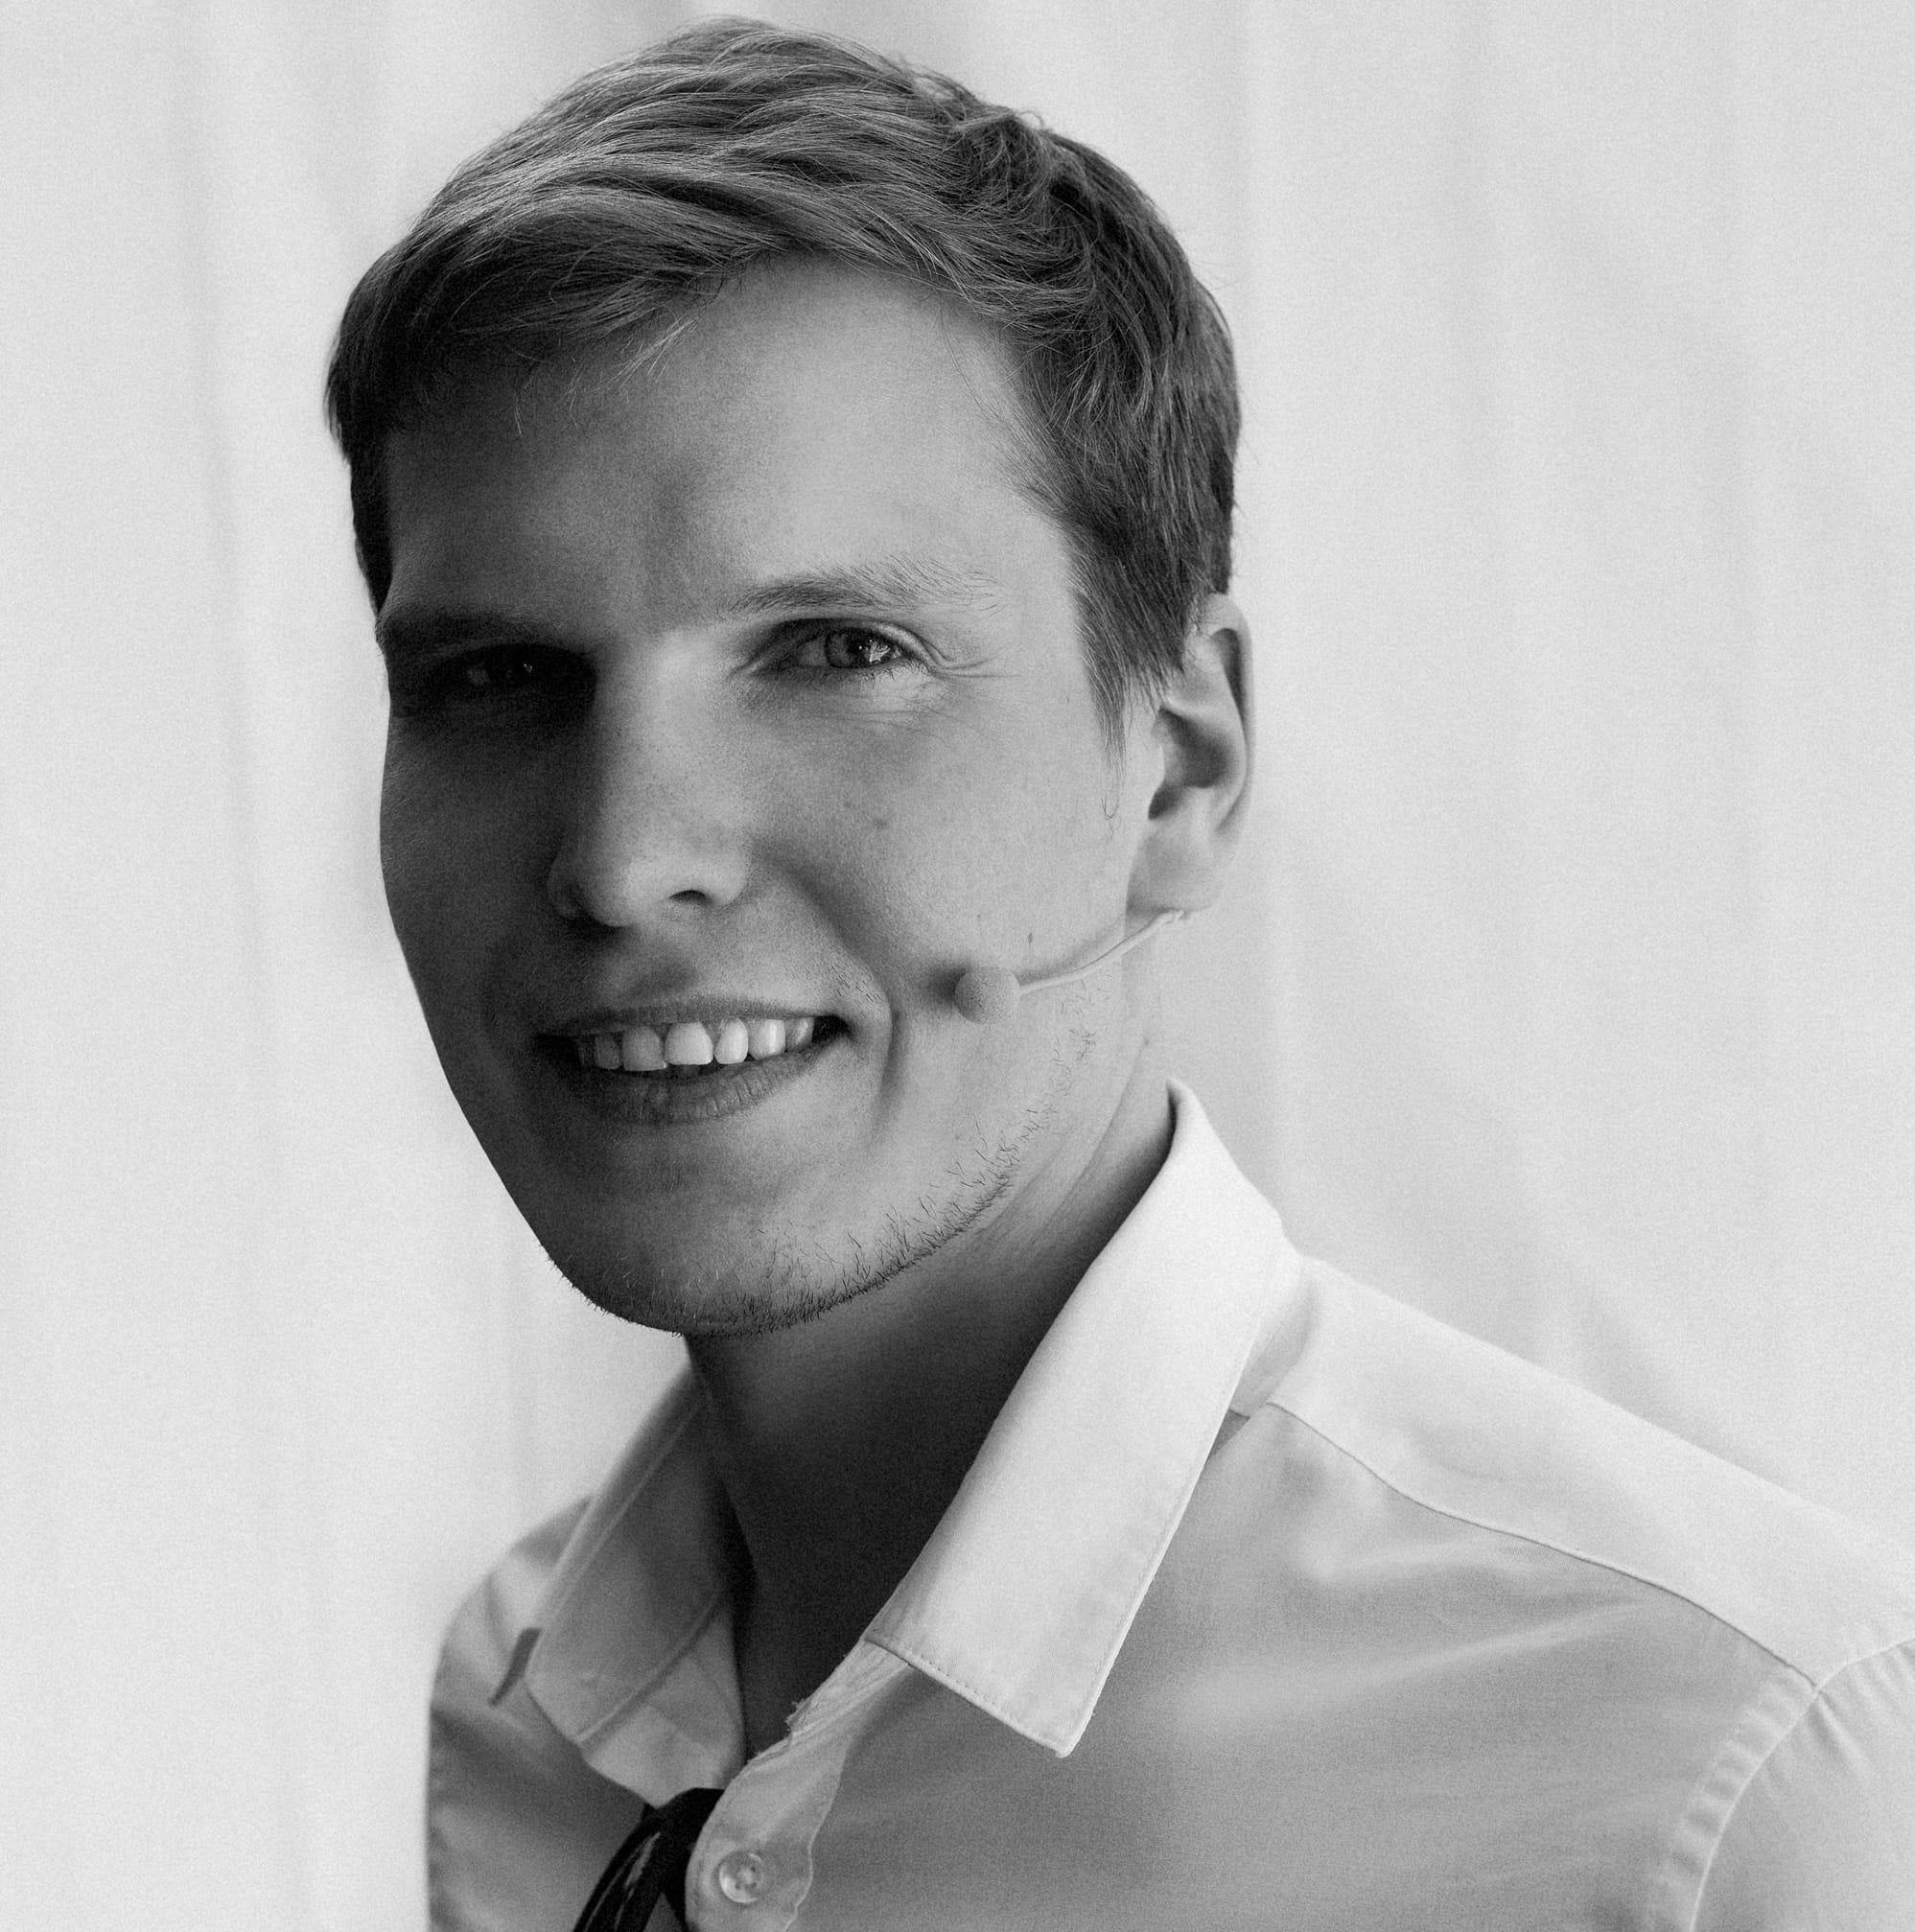 Interview with Kalev Kärpuk - Gamification Expert, CEO and Founder of adact